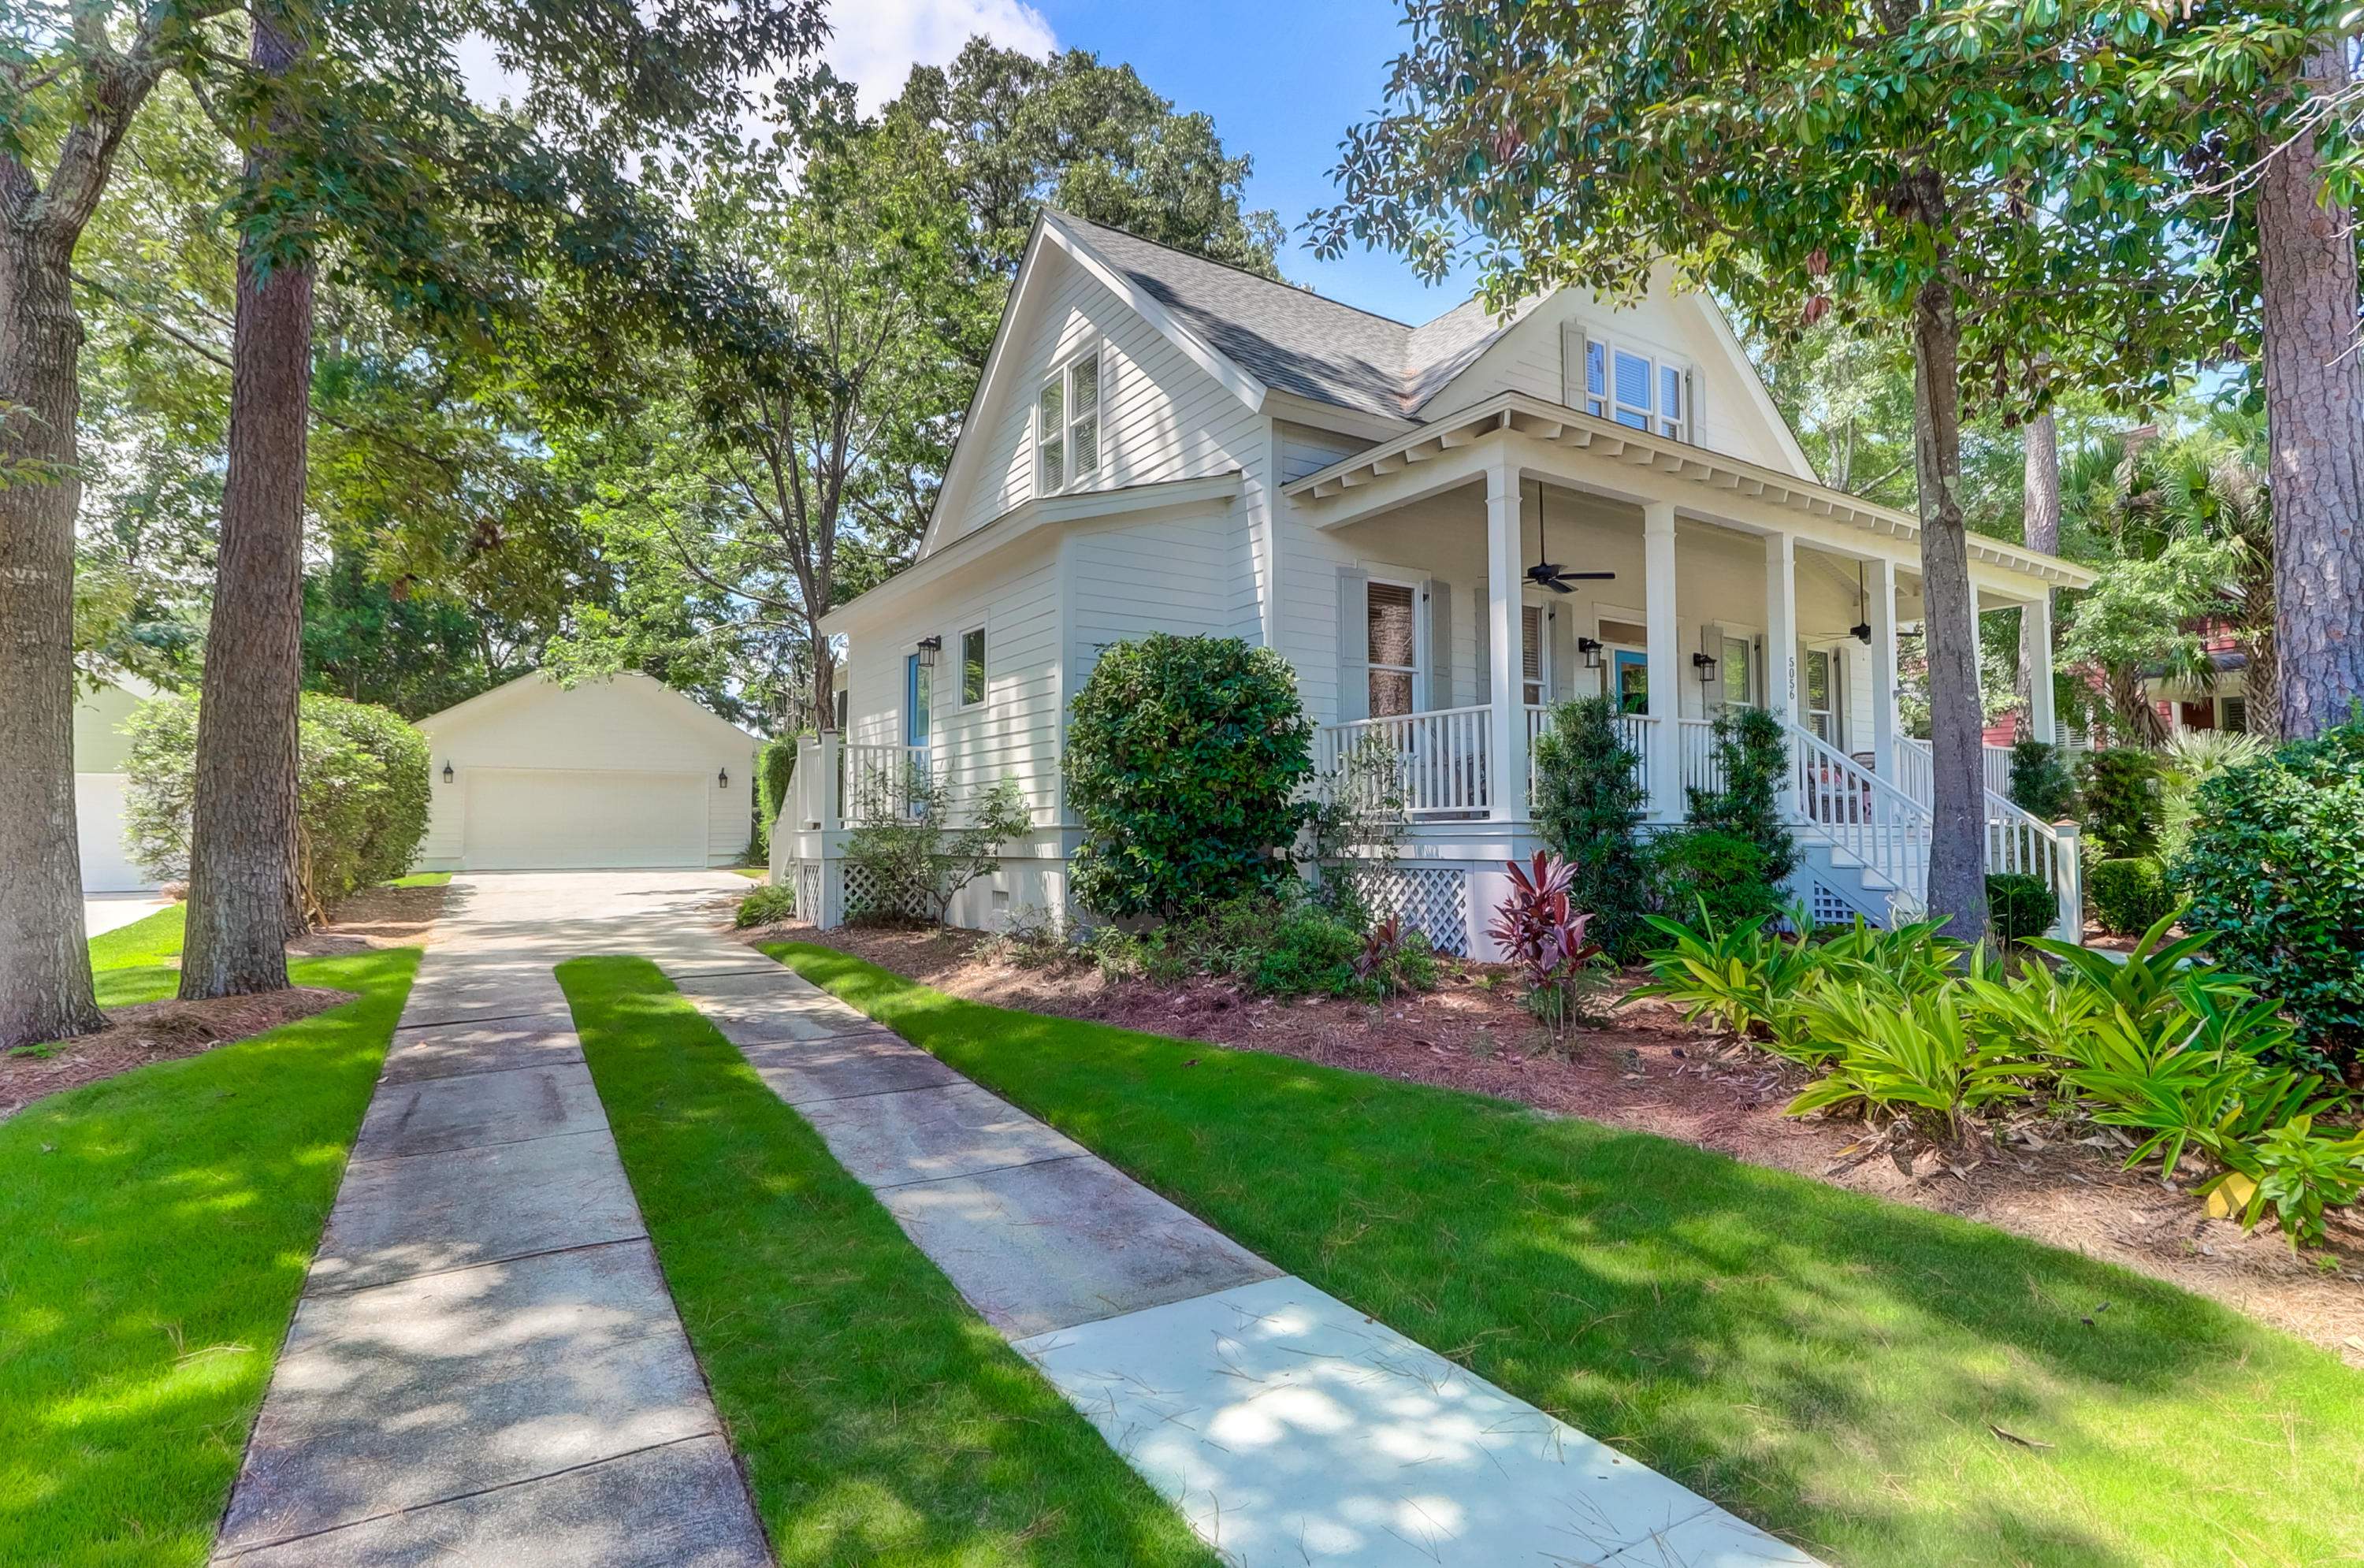 The Villages In St Johns Woods Homes For Sale - 5056 Coral Reef Dr, Johns Island, SC - 31